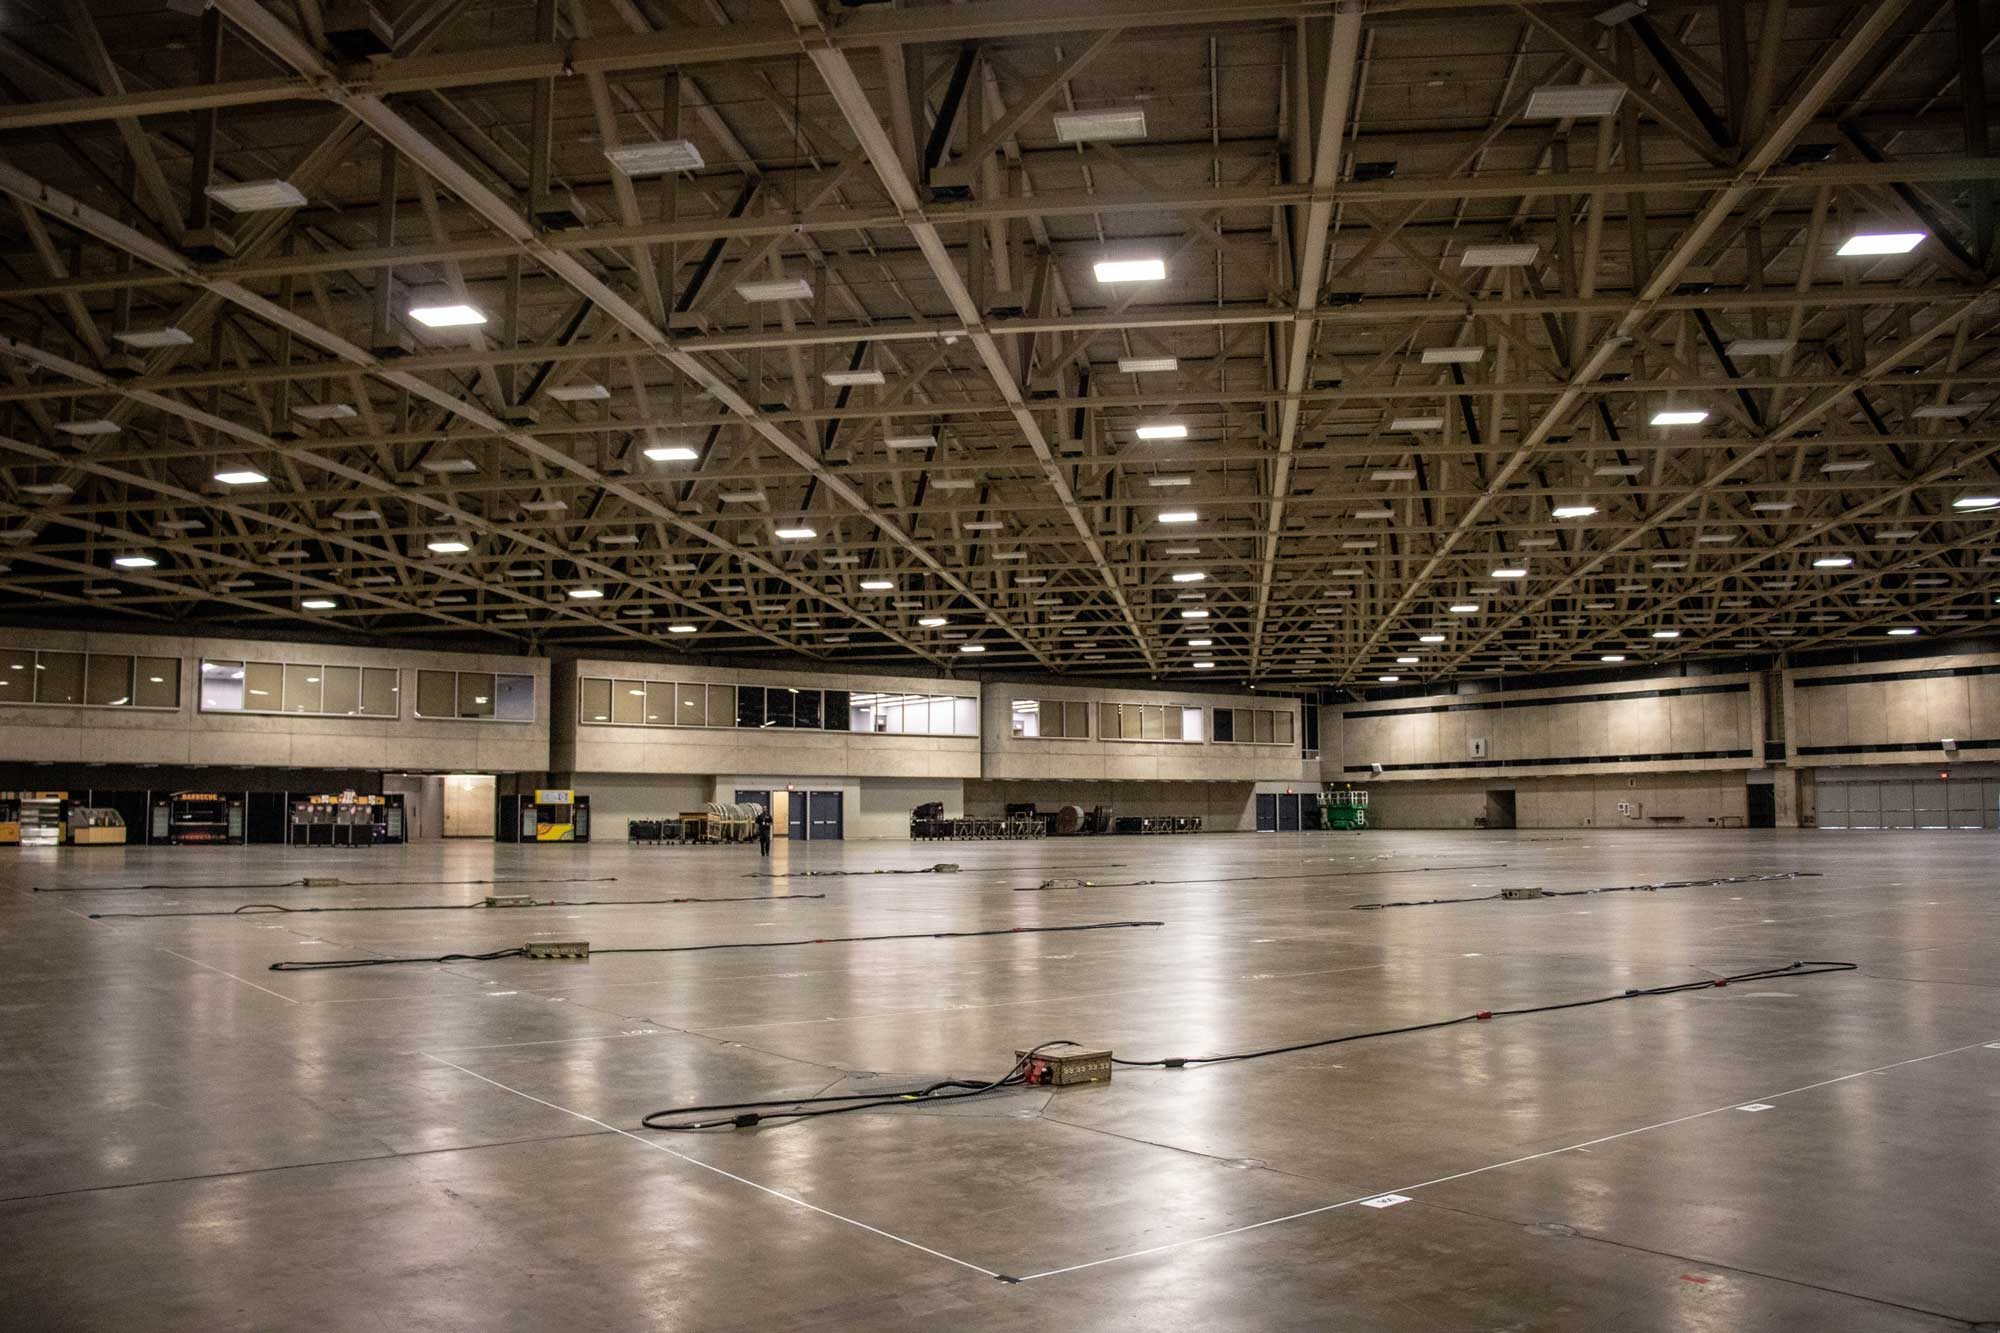 Exhibit hall with electrical utilities placed.